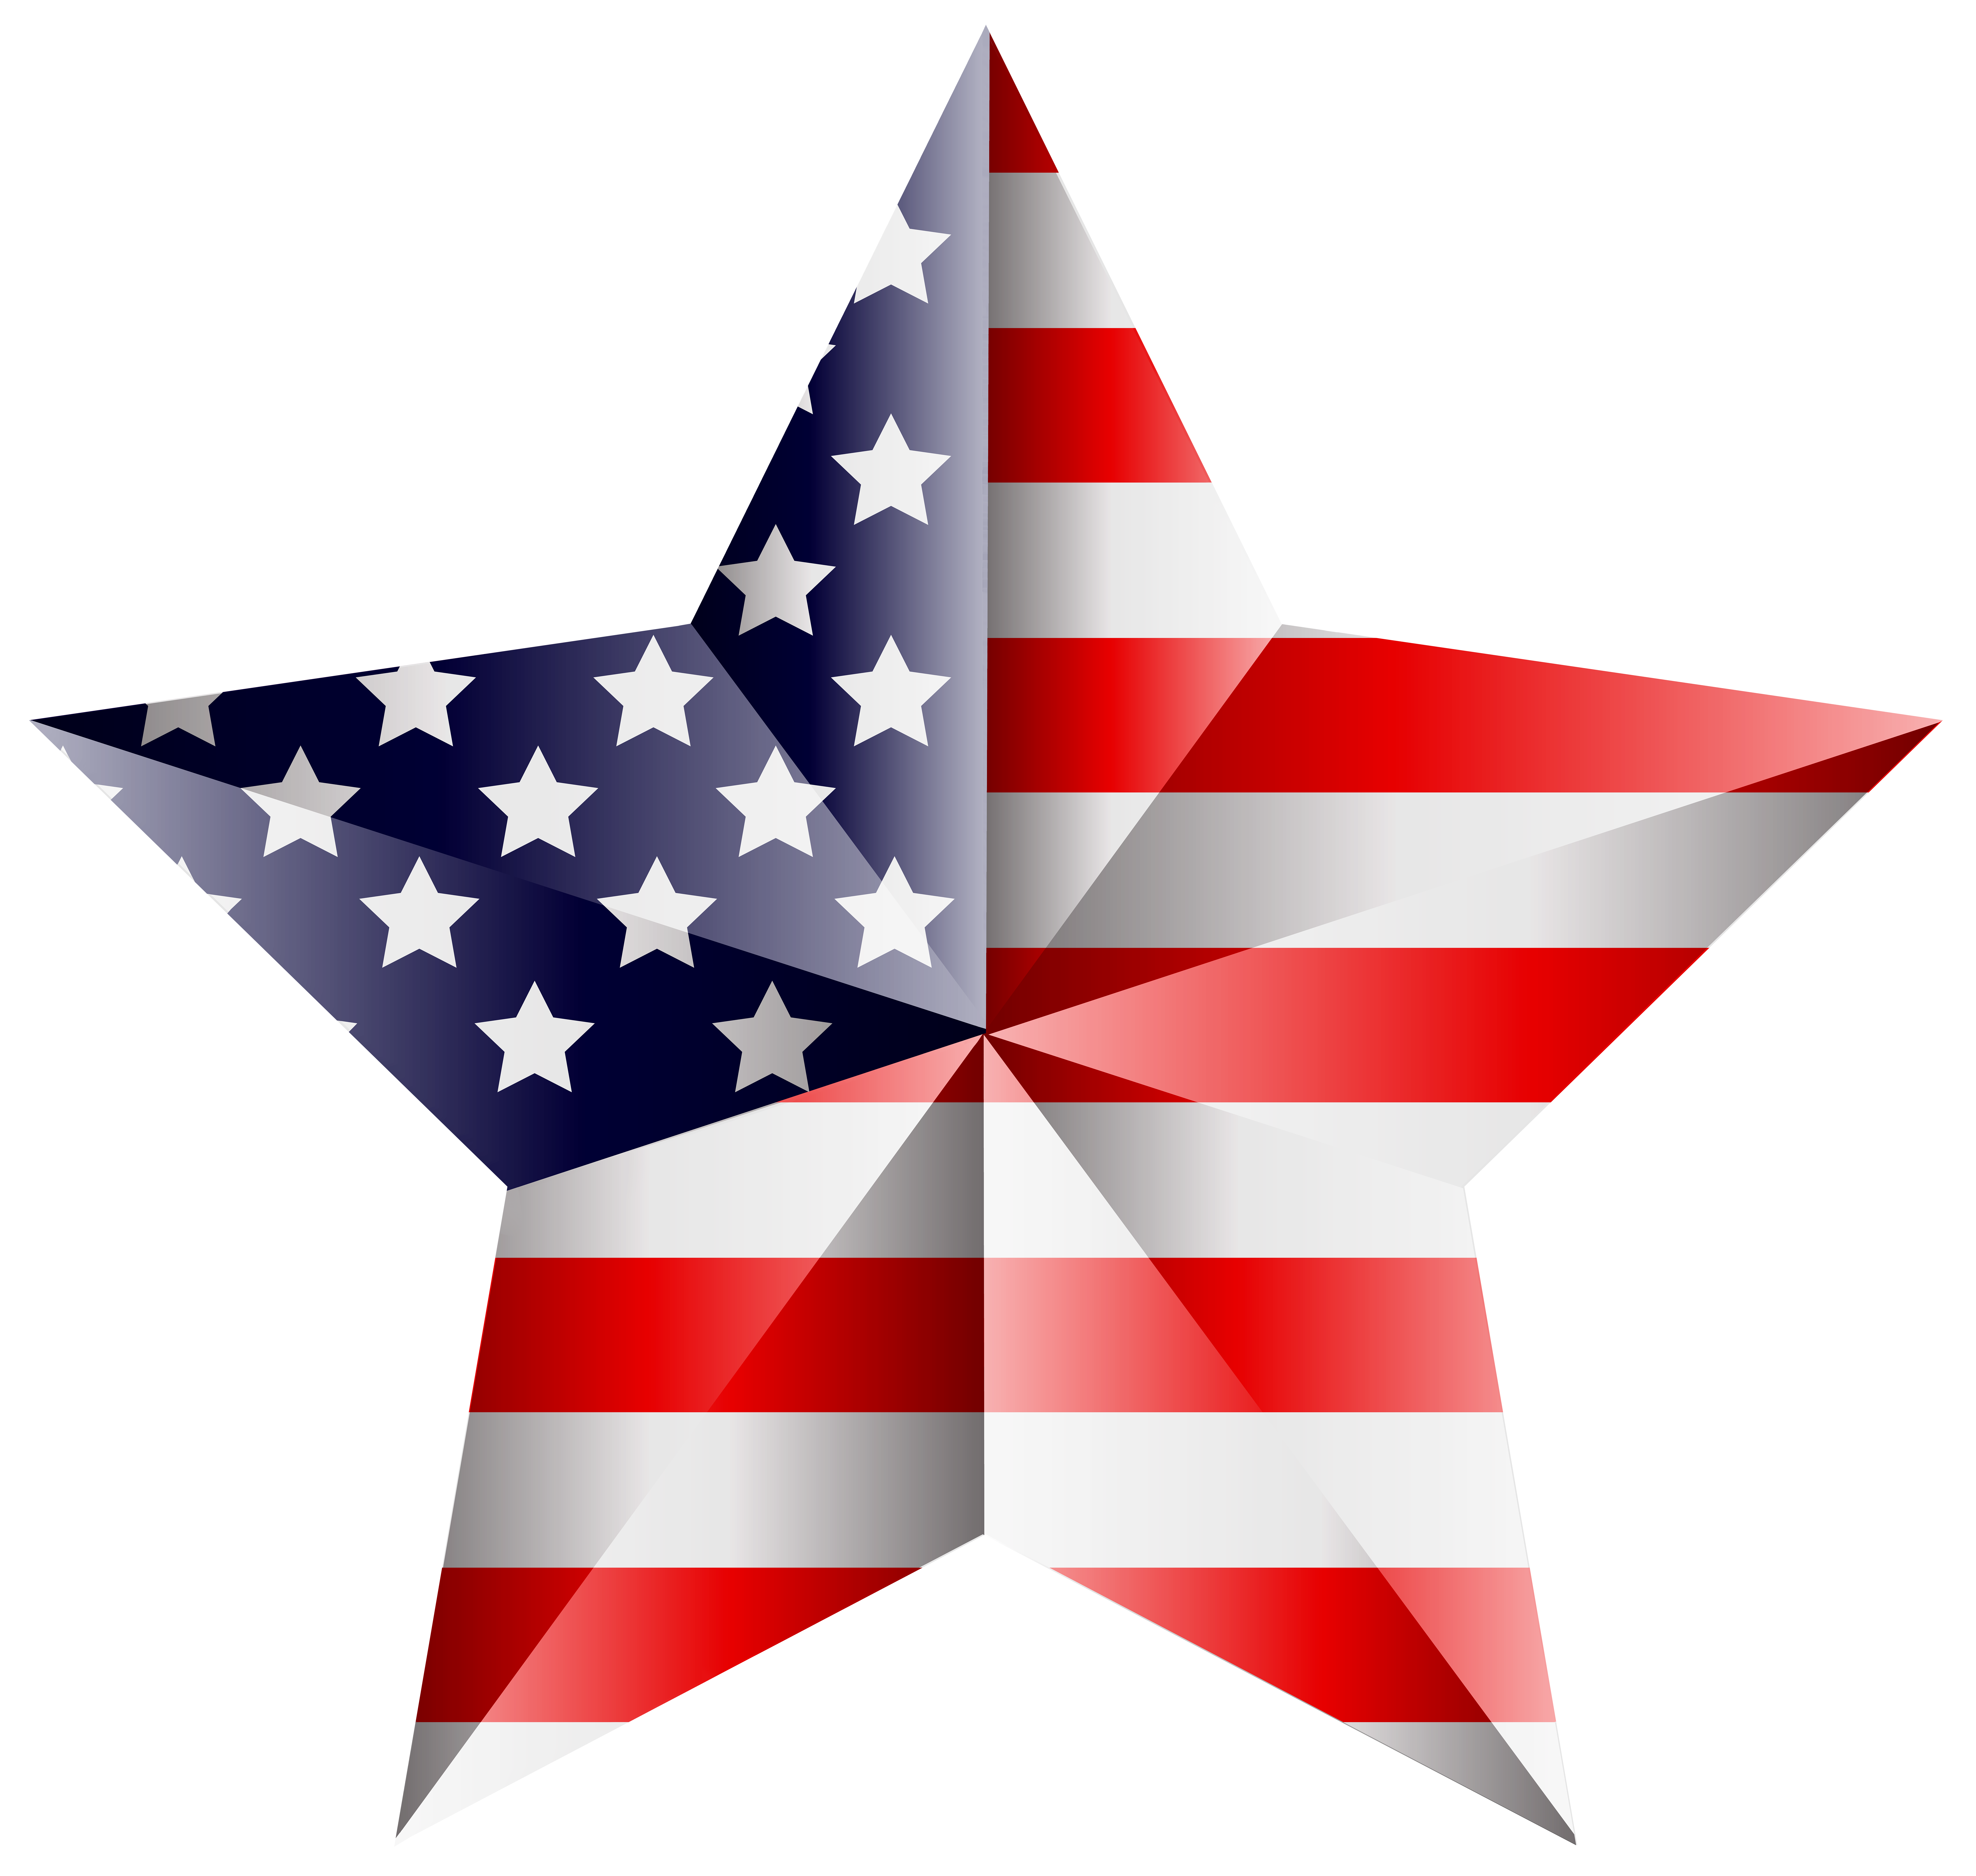 American flag star clipart vector black and white stock United States of America Flag of the United States Independence Day ... vector black and white stock